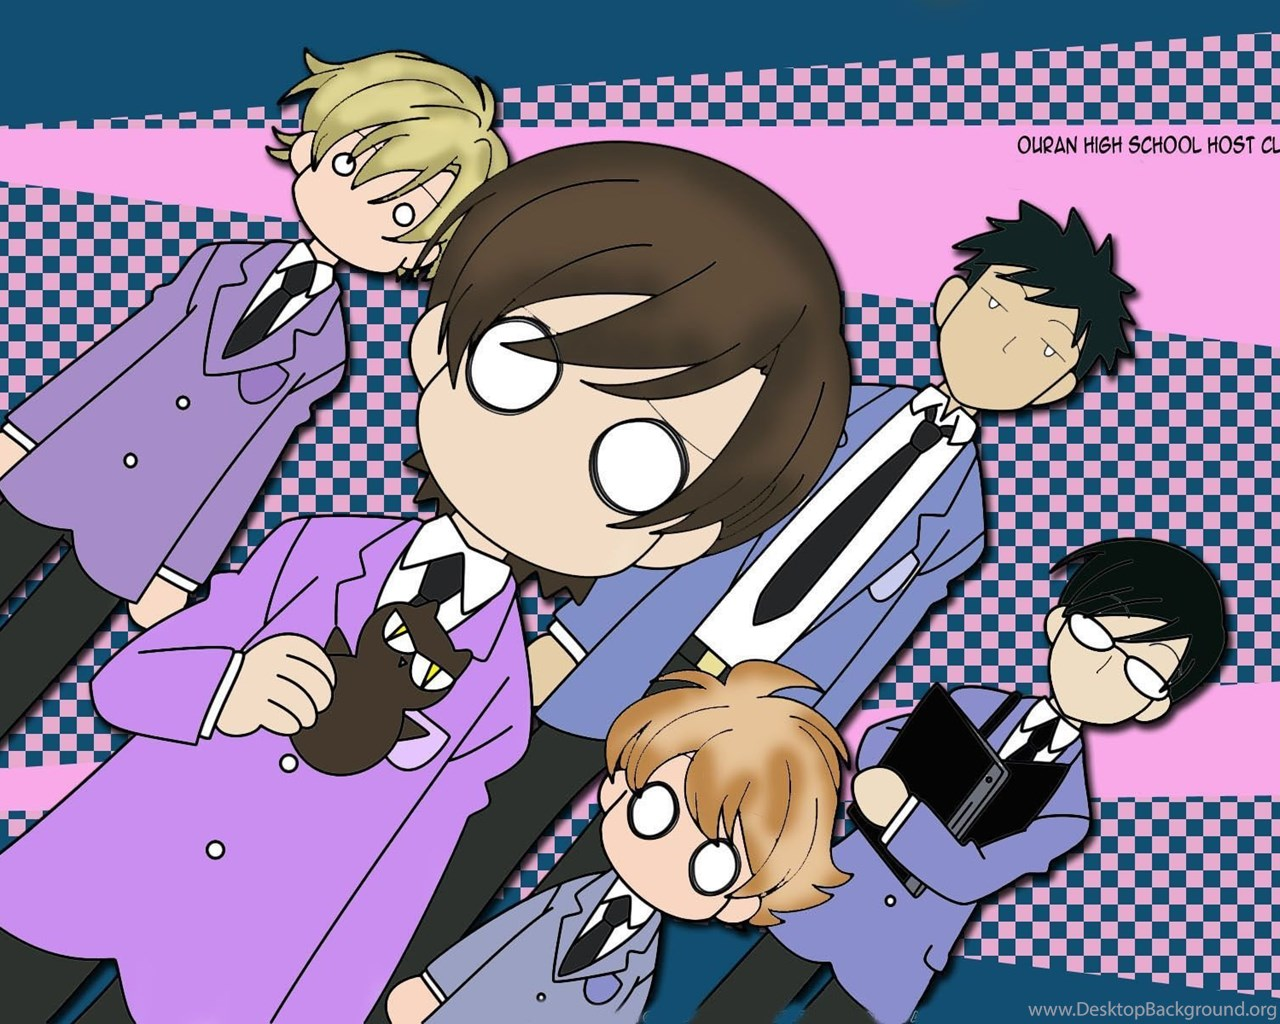 Ouran Wallpapers Ouran High School Host Club Wallpapers 20880690